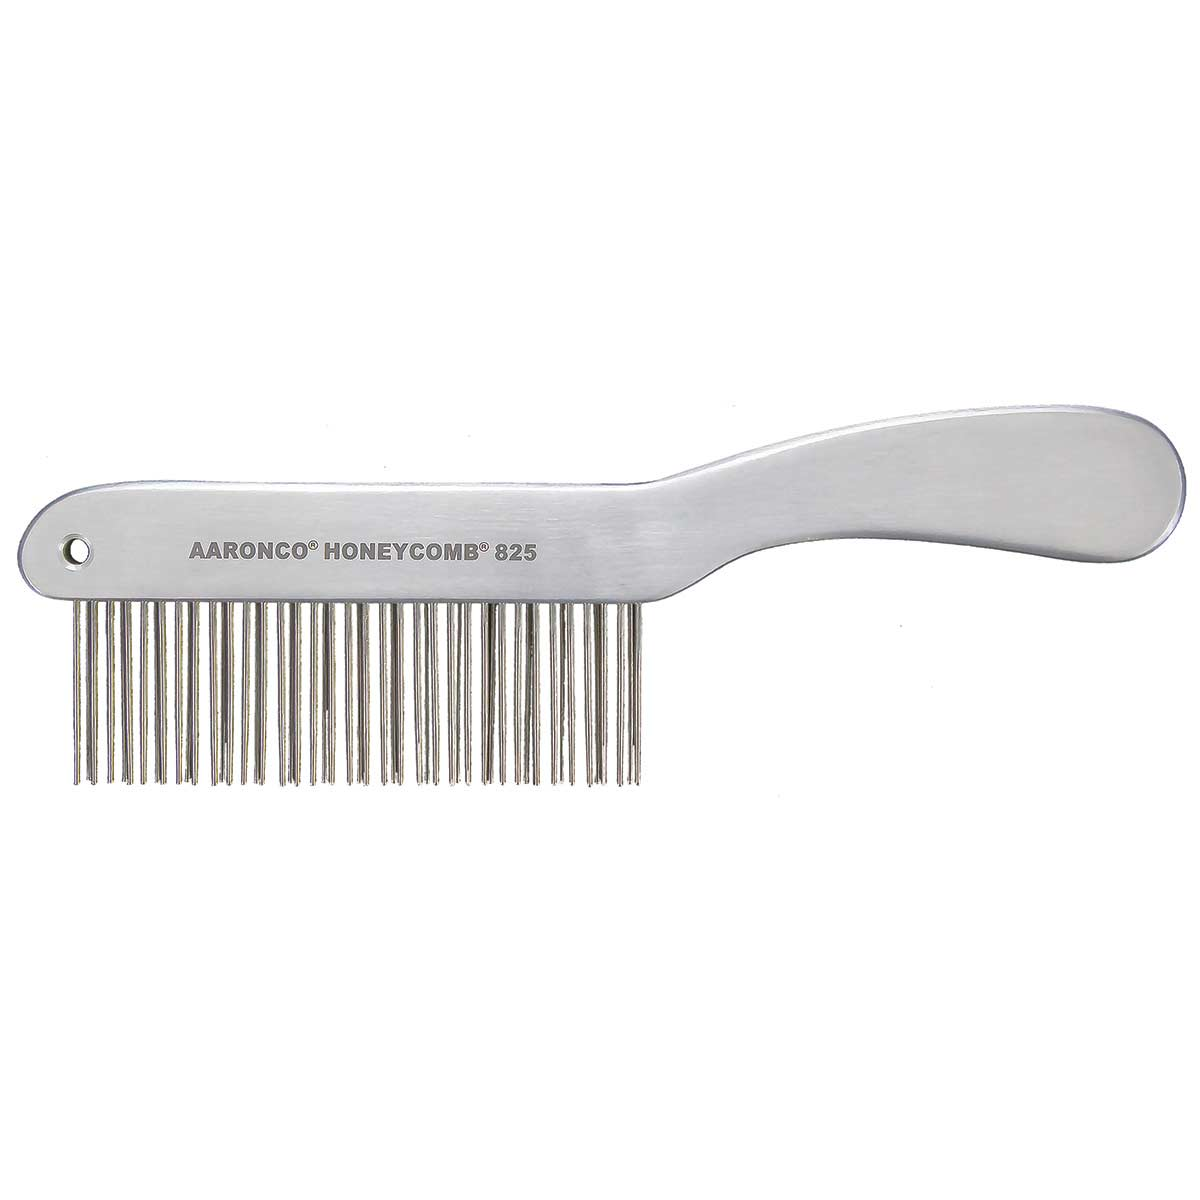 "AARONCO HONEYCOMBS 8.5"" Double Row Fisher 51 Medium Teeth 1 3/8"" Long Grooming Comb"